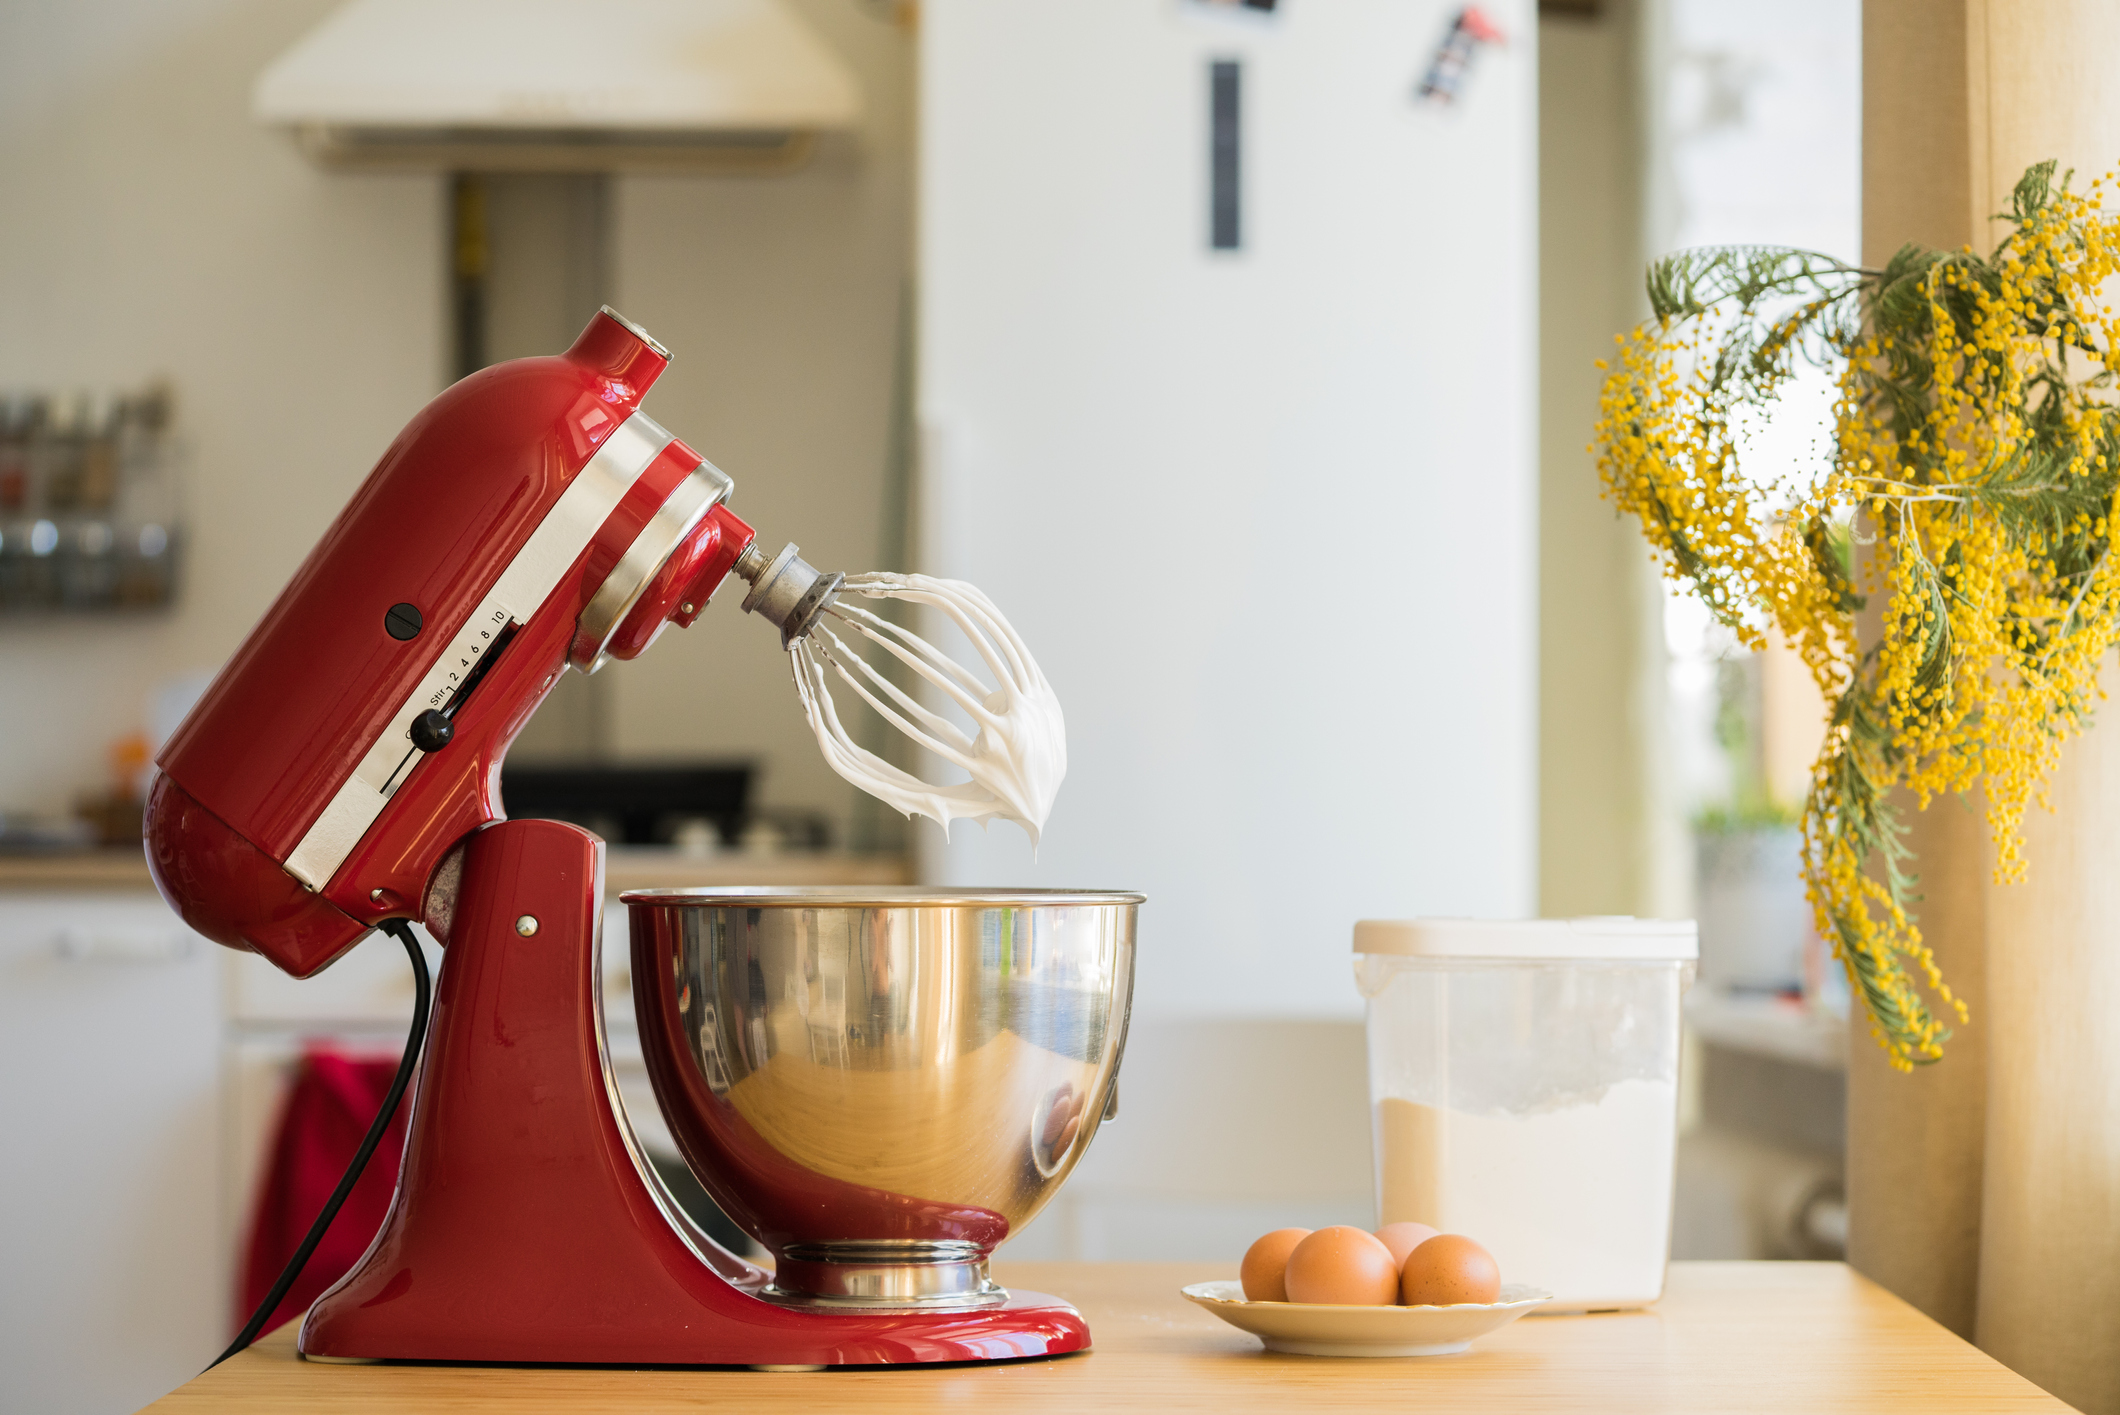 kitchenaid niche audience target consumers kitchen products